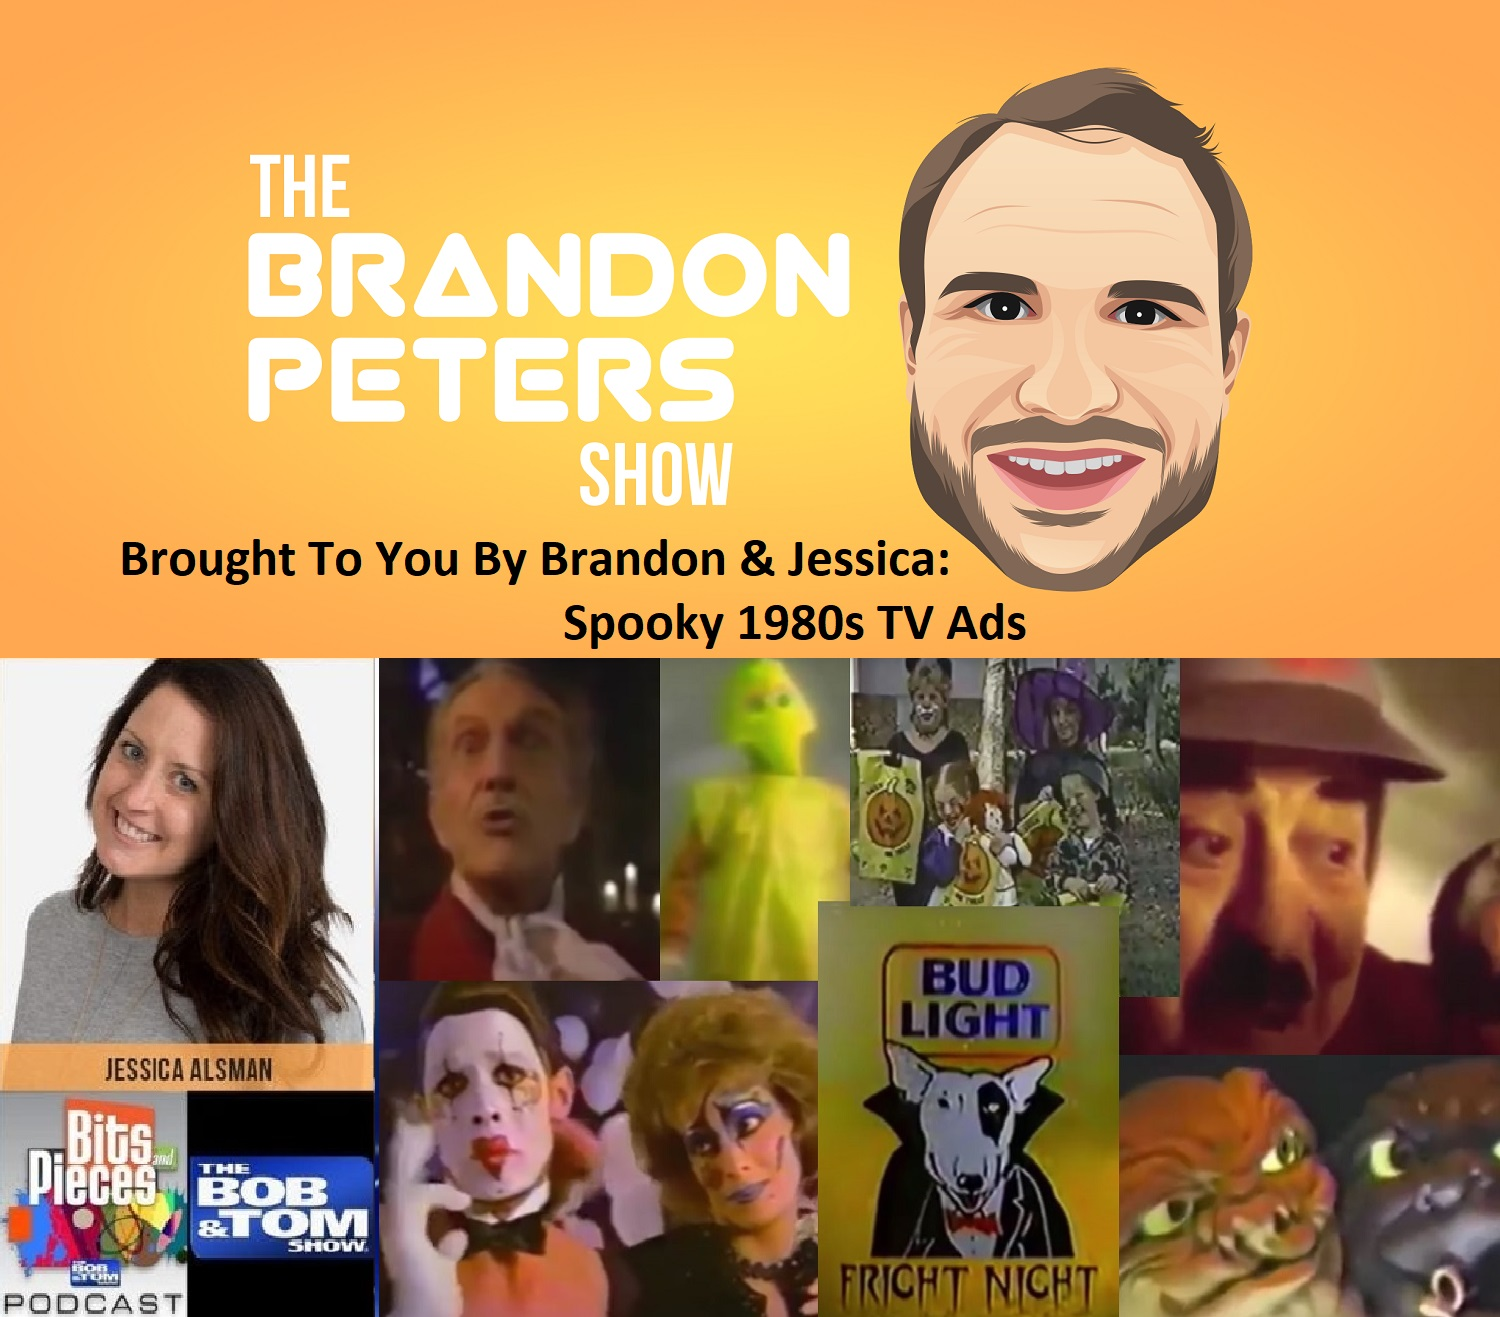 Brought To You By Brandon & Jessica: Spooky 1980's TV Ads